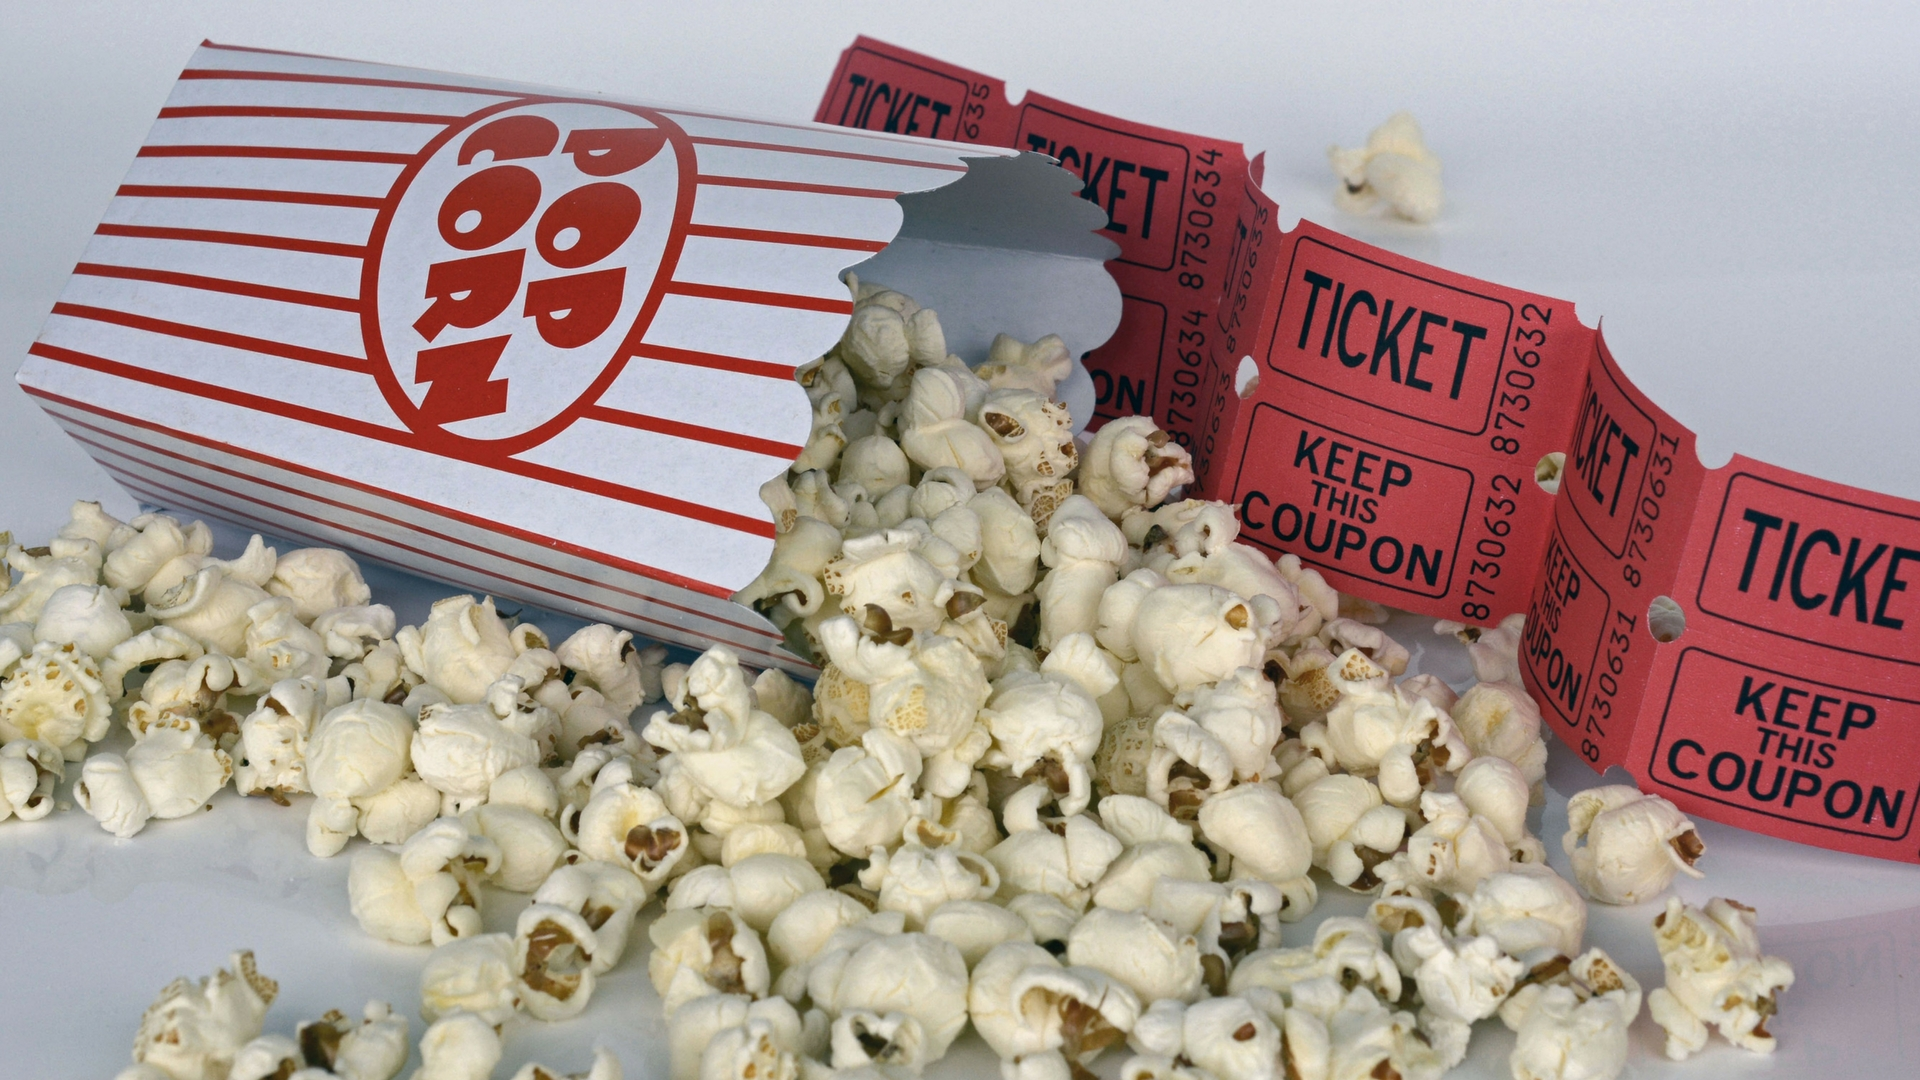 popcorn and tickets red image